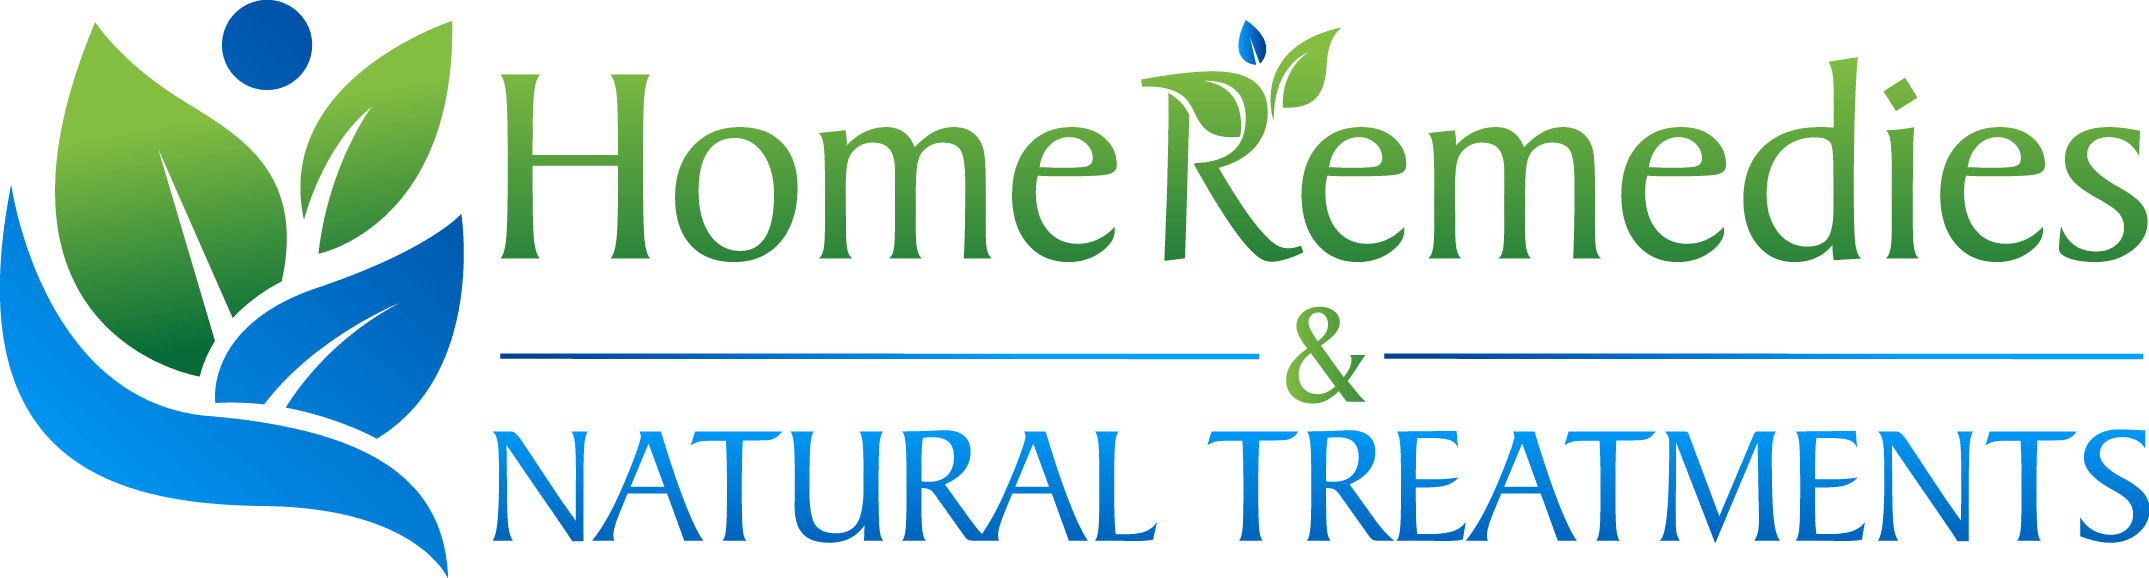 Home Remedies and Natural Treatments